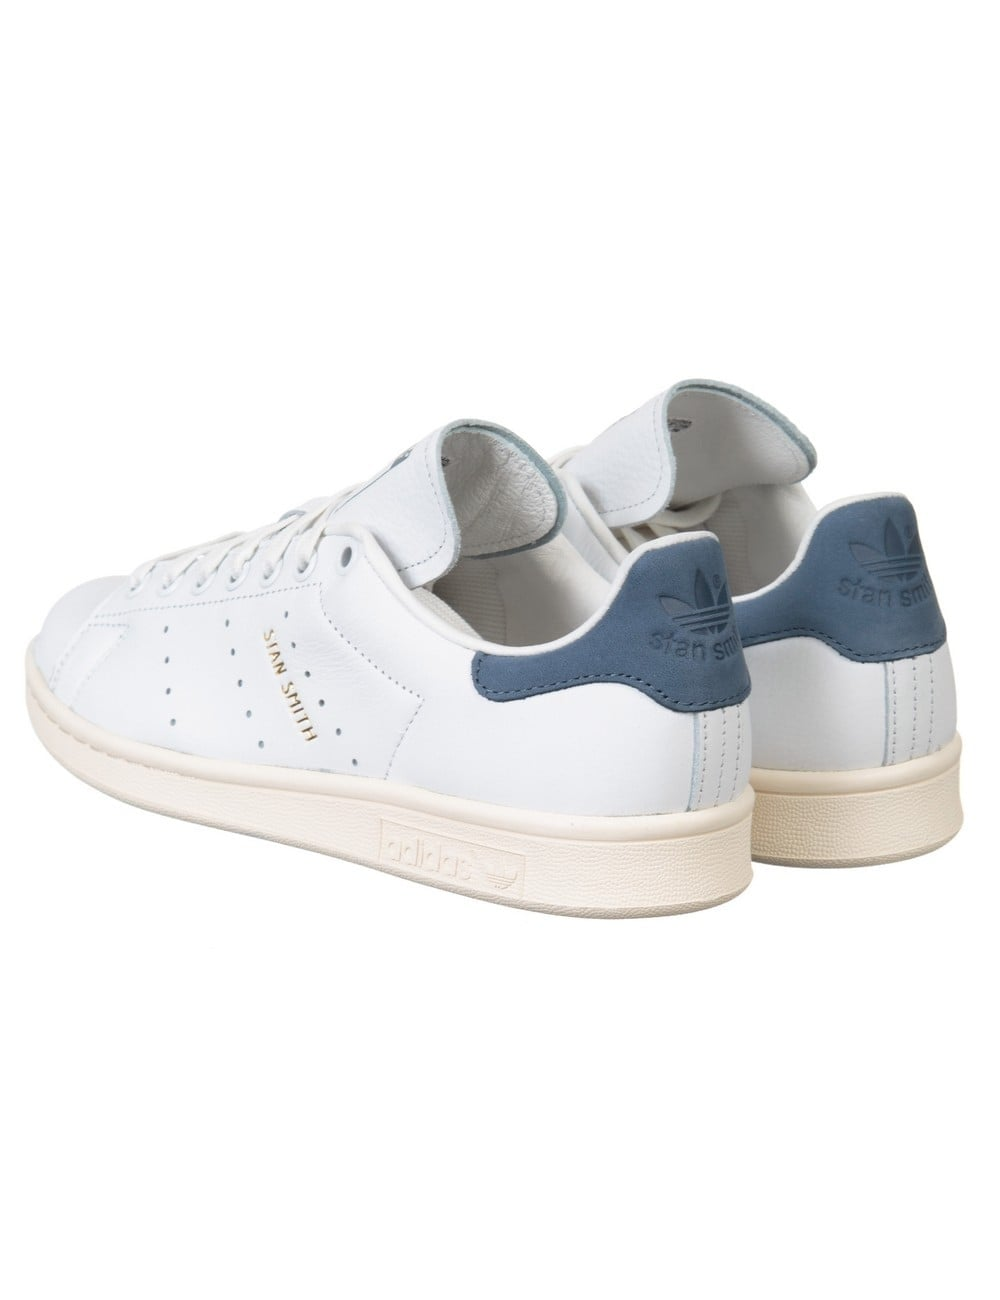 98c328a1ae6deb Adidas Originals Stan Smith Shoes - White Tec Ink - Trainers from ...